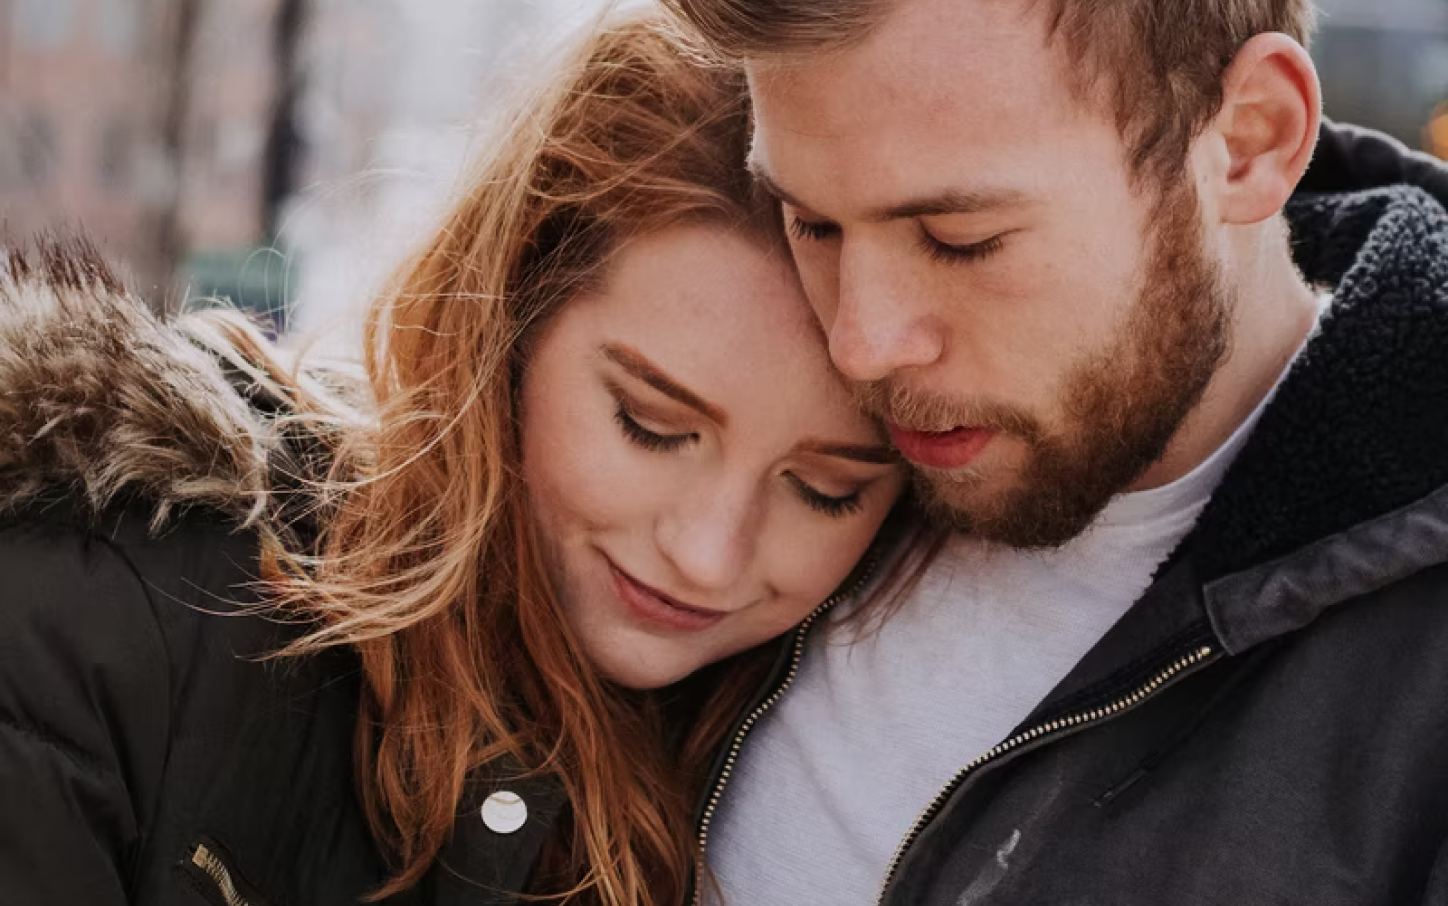 We've been together for two years – are we de facto?